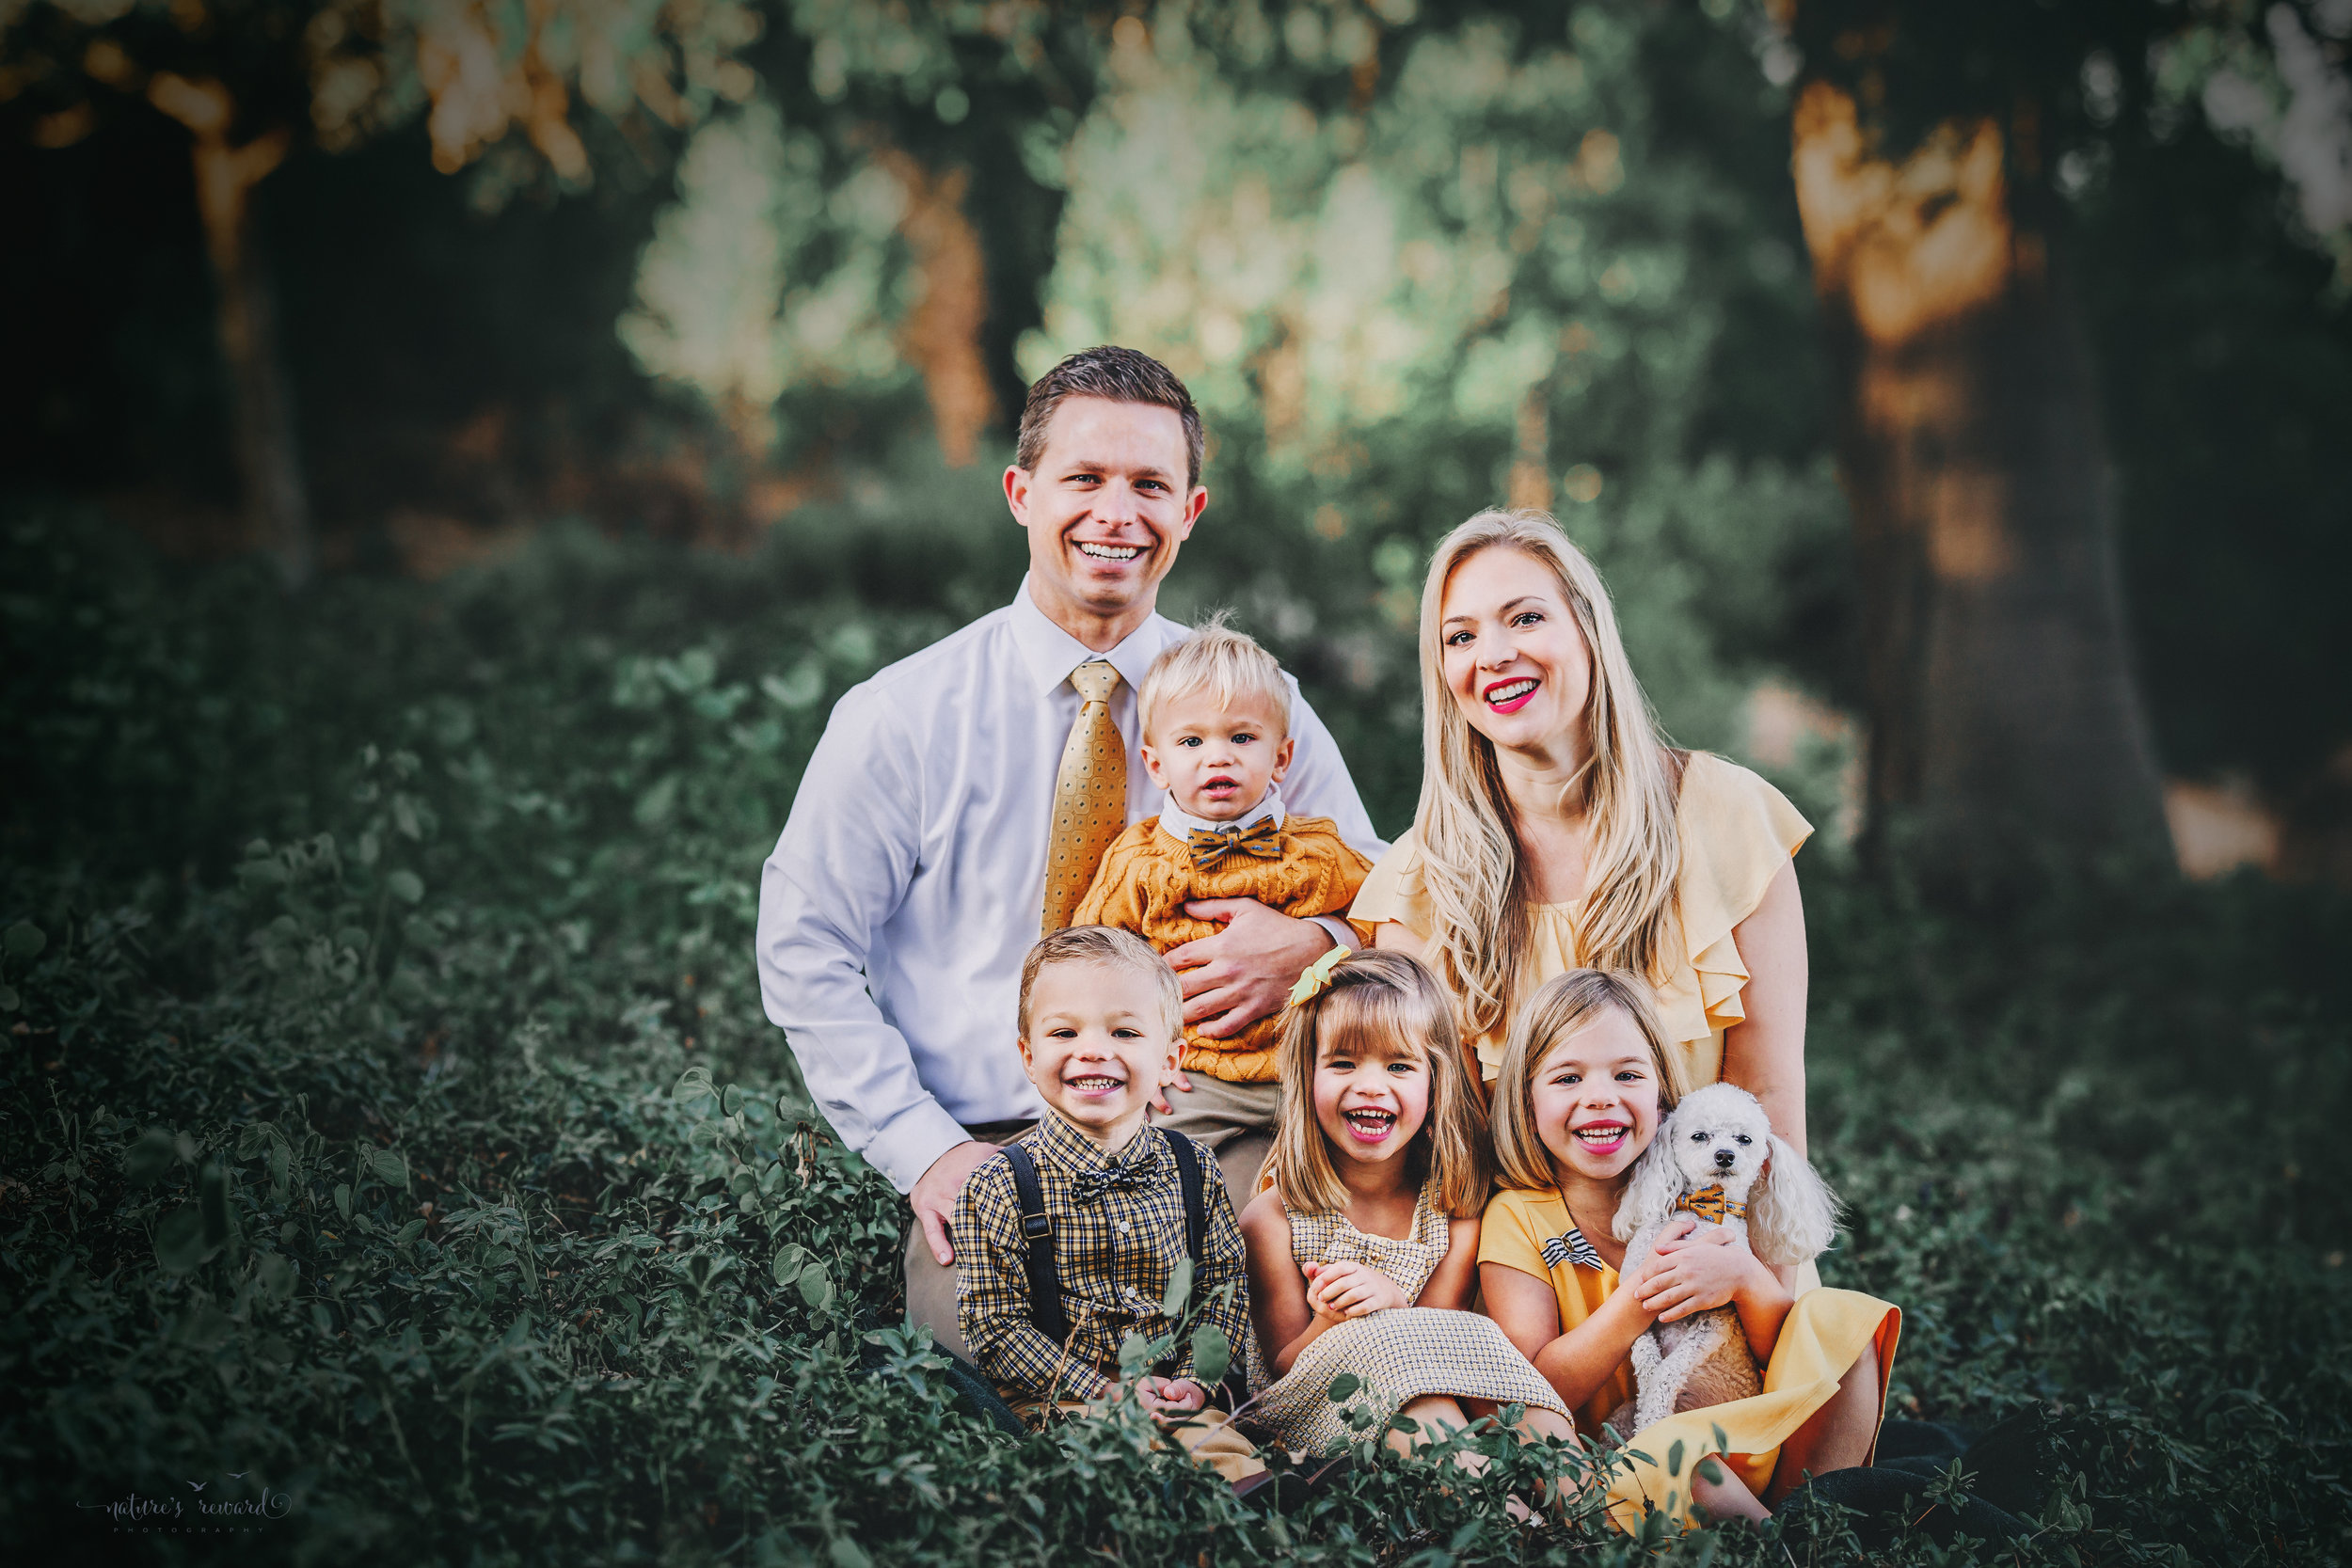 Gorgeous family wearing yellow and tan and whites with their fur baby 2 daughters and 2 sons- A portrait By Nature's Reward Photography!